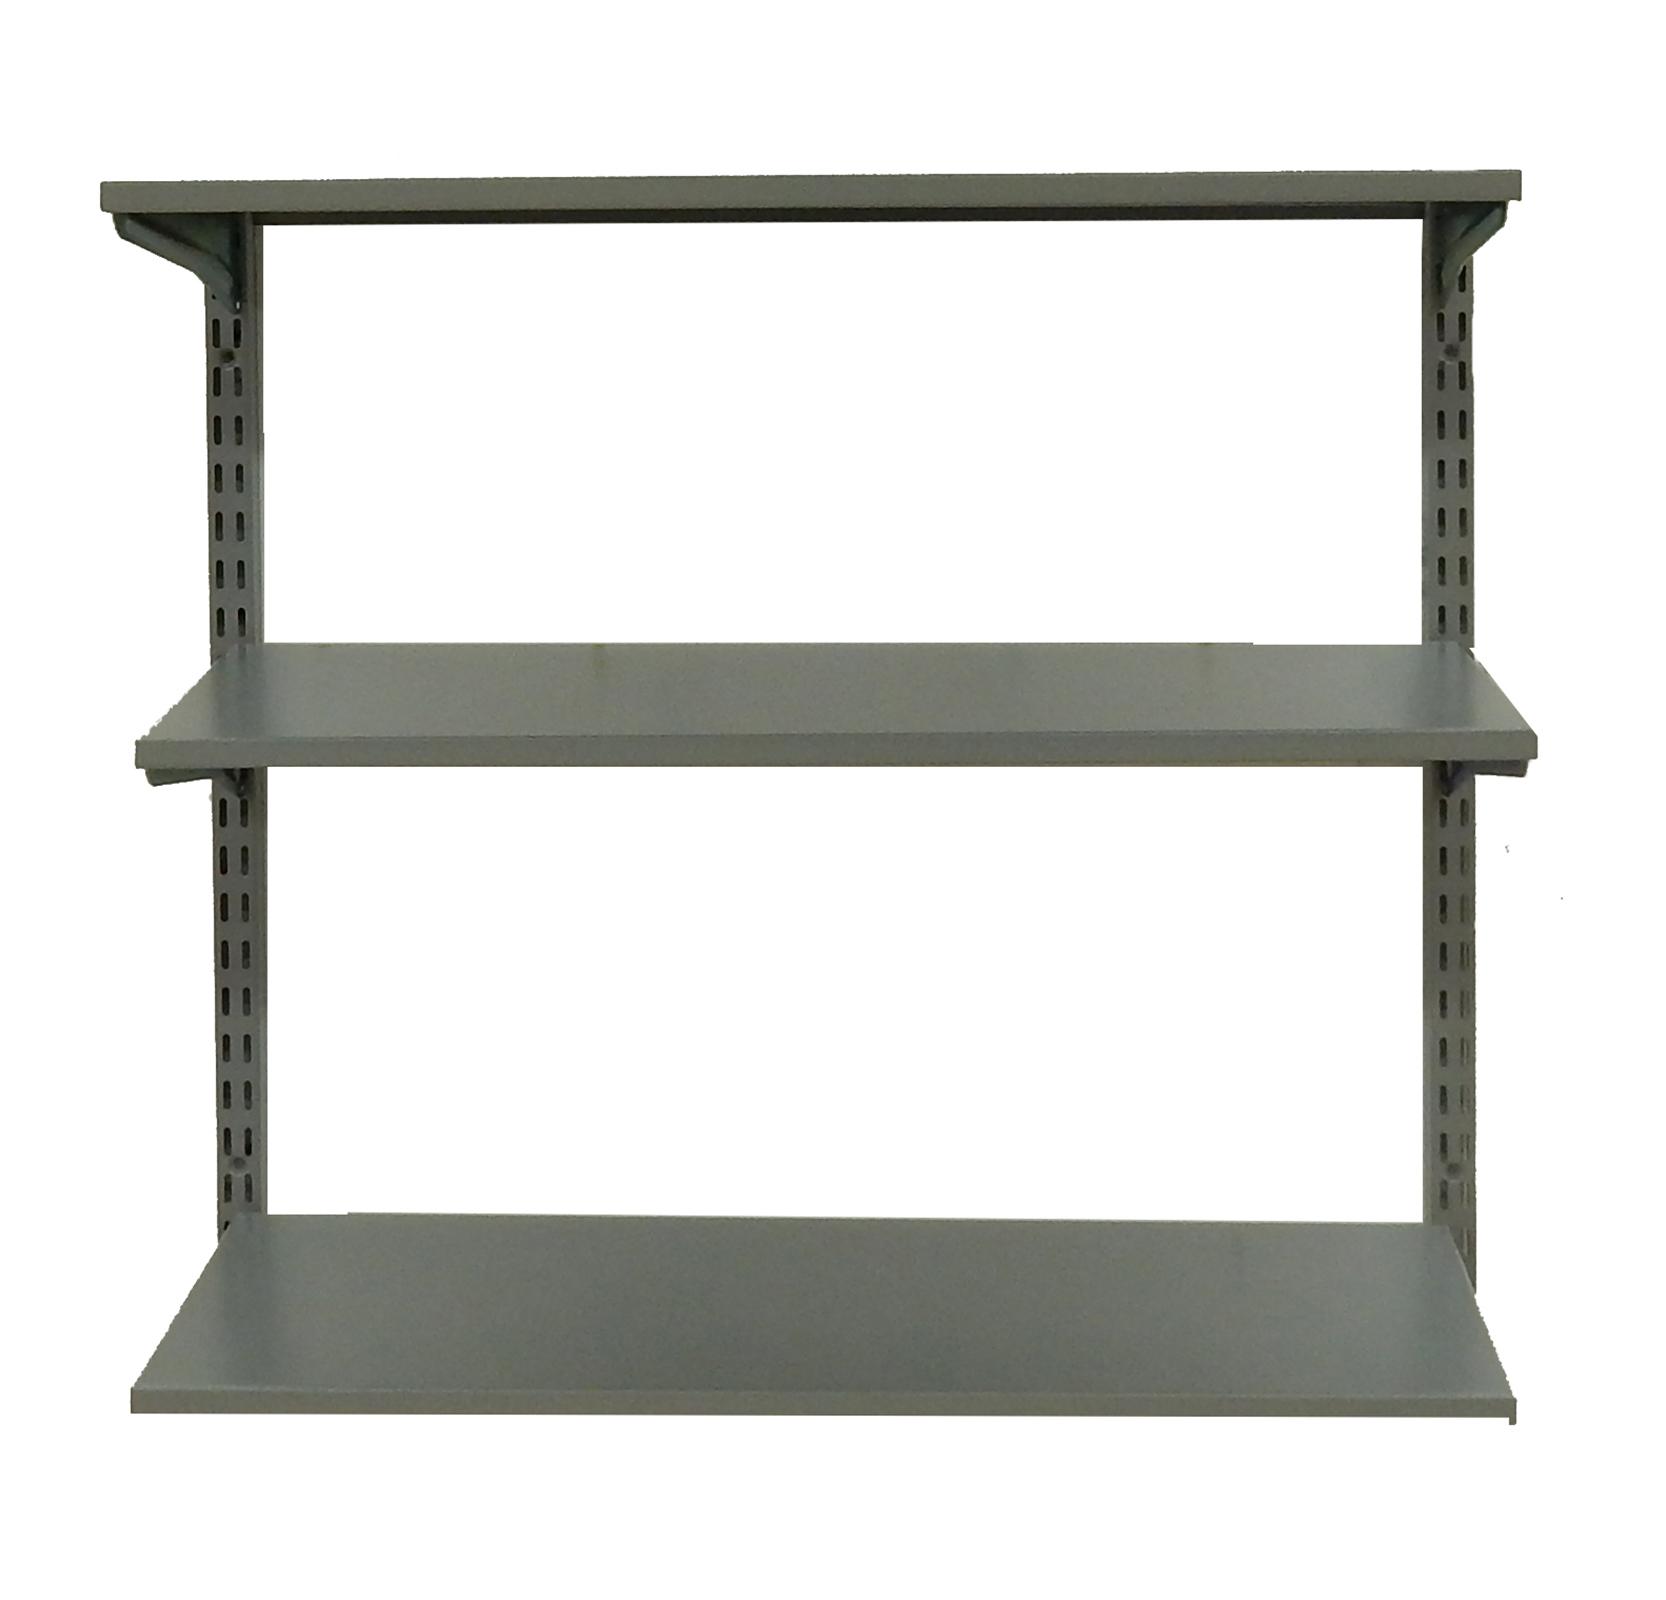 33 In. W x 31.5 In. H Steel Shelf Wall Mount Unit